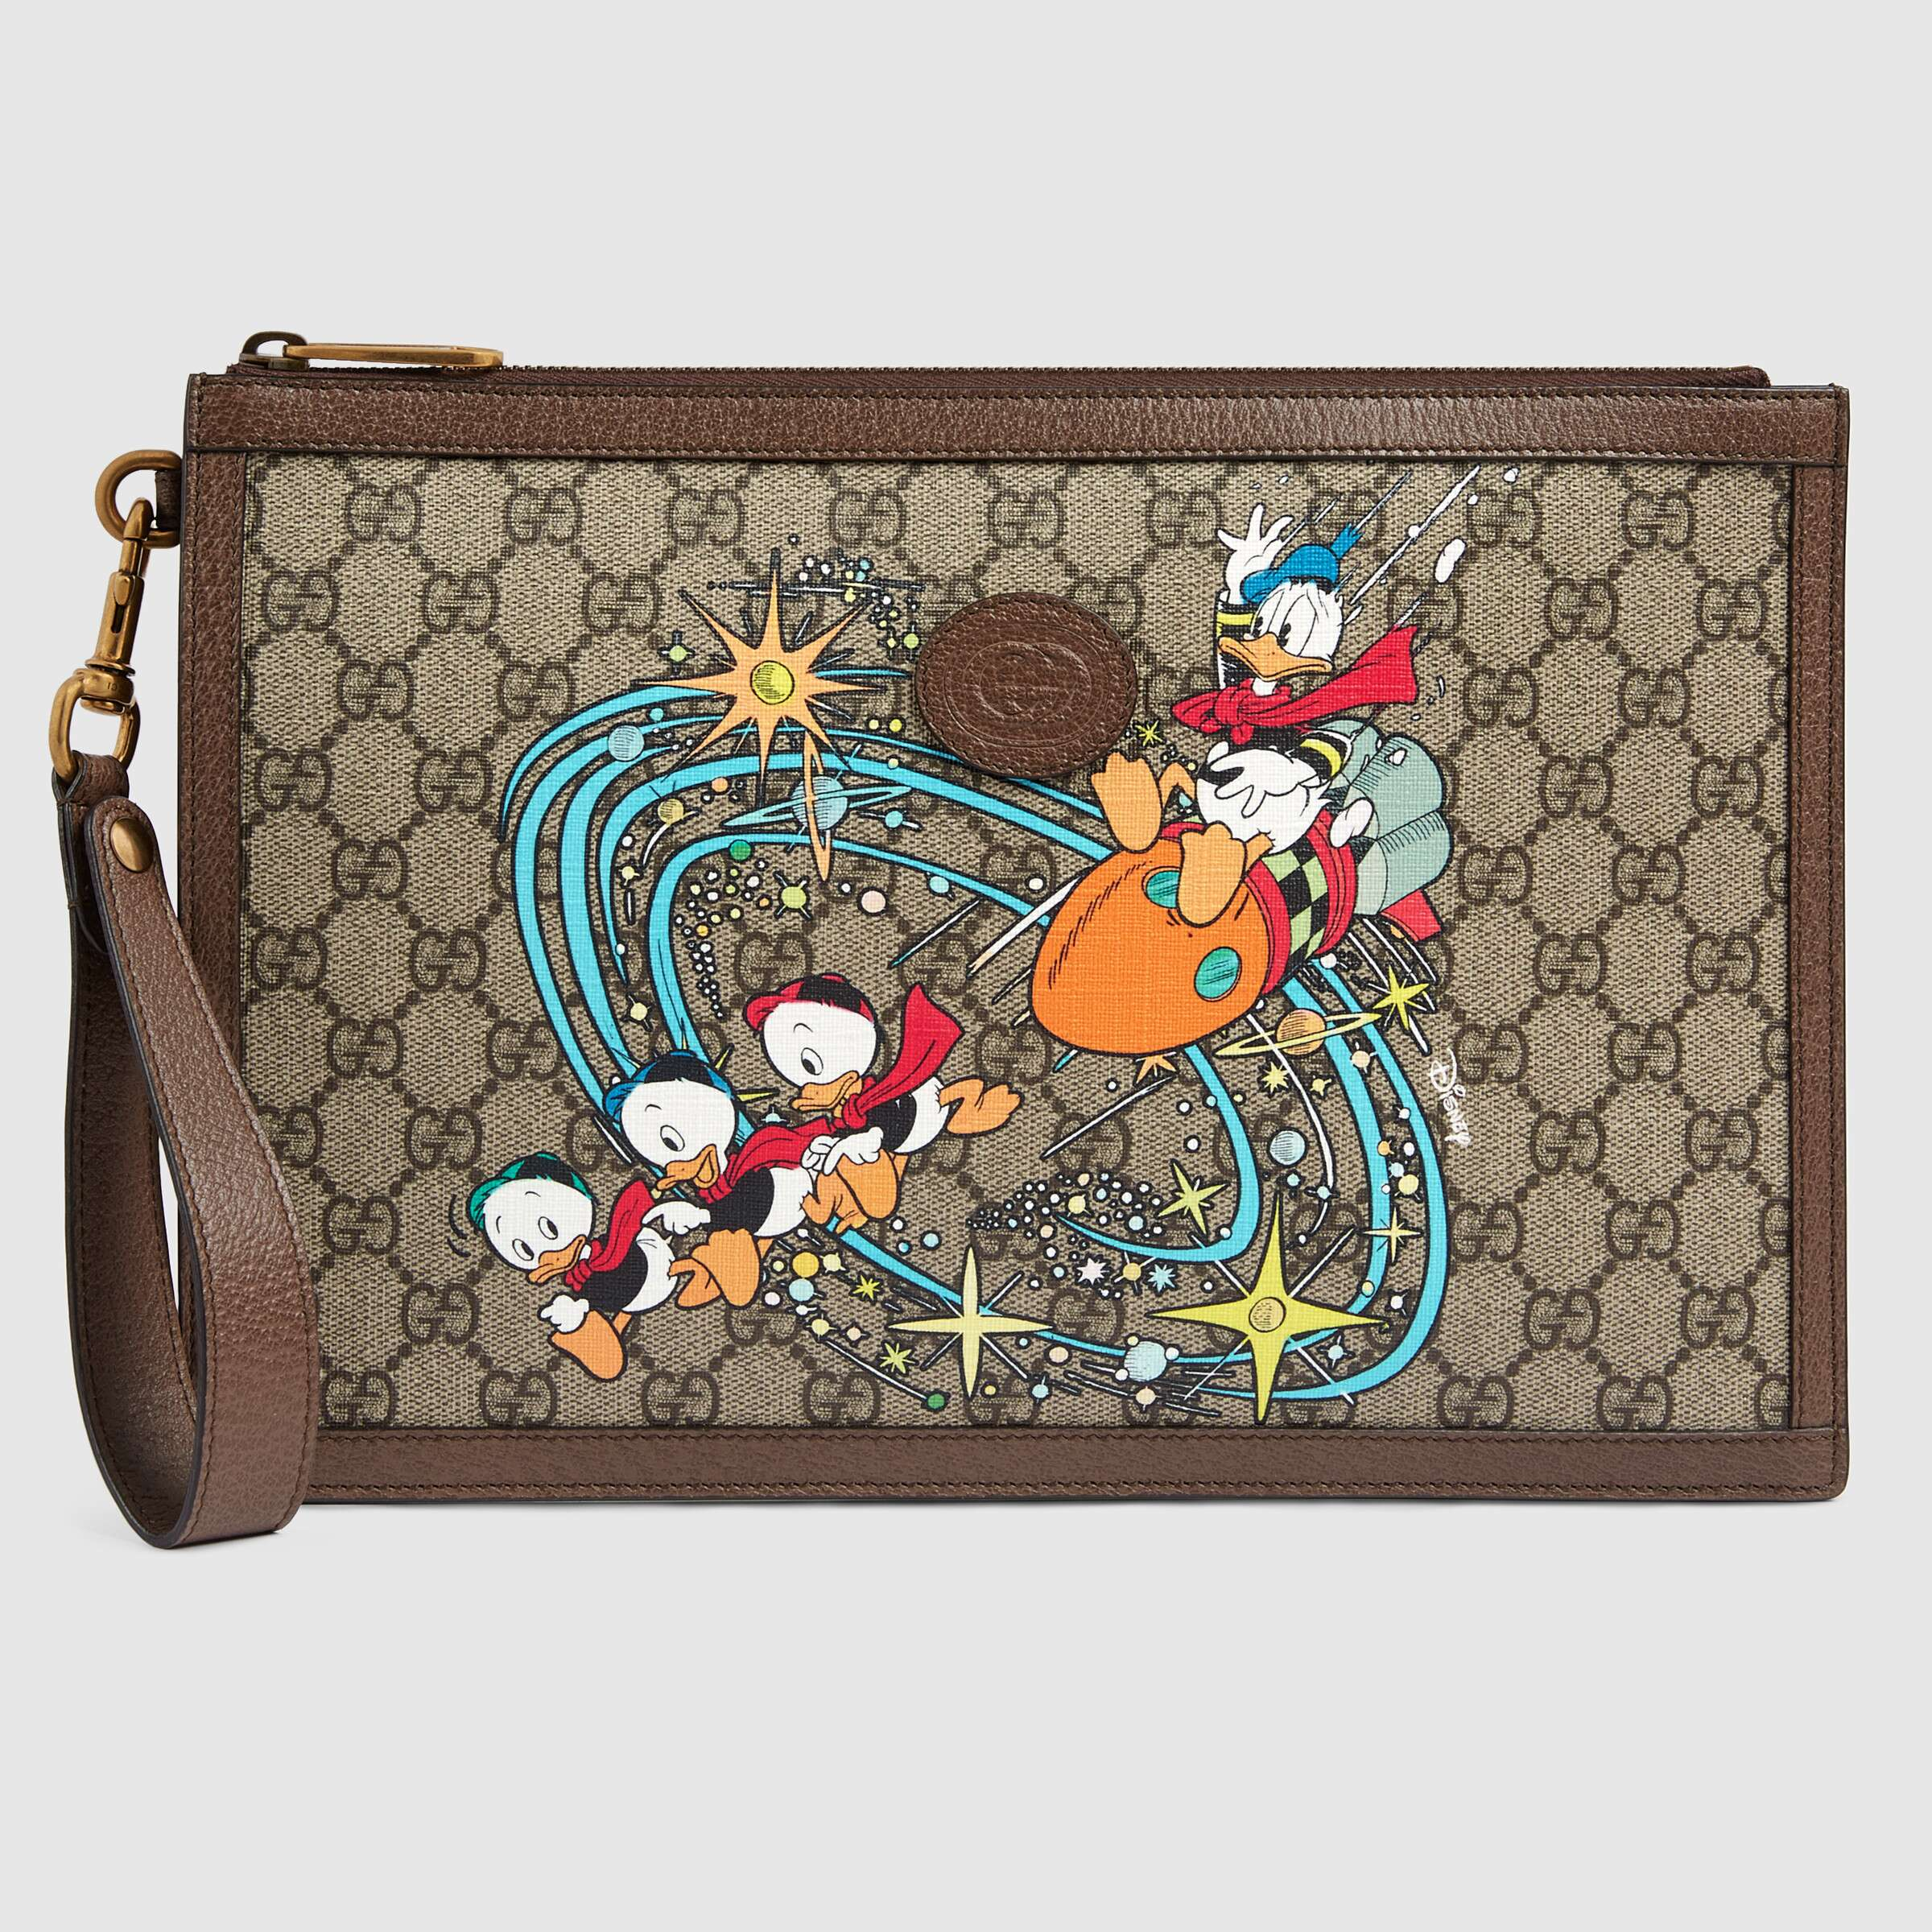 Gucci Disney X Gucci Donald Duck Pouch 647925 Brown Leather